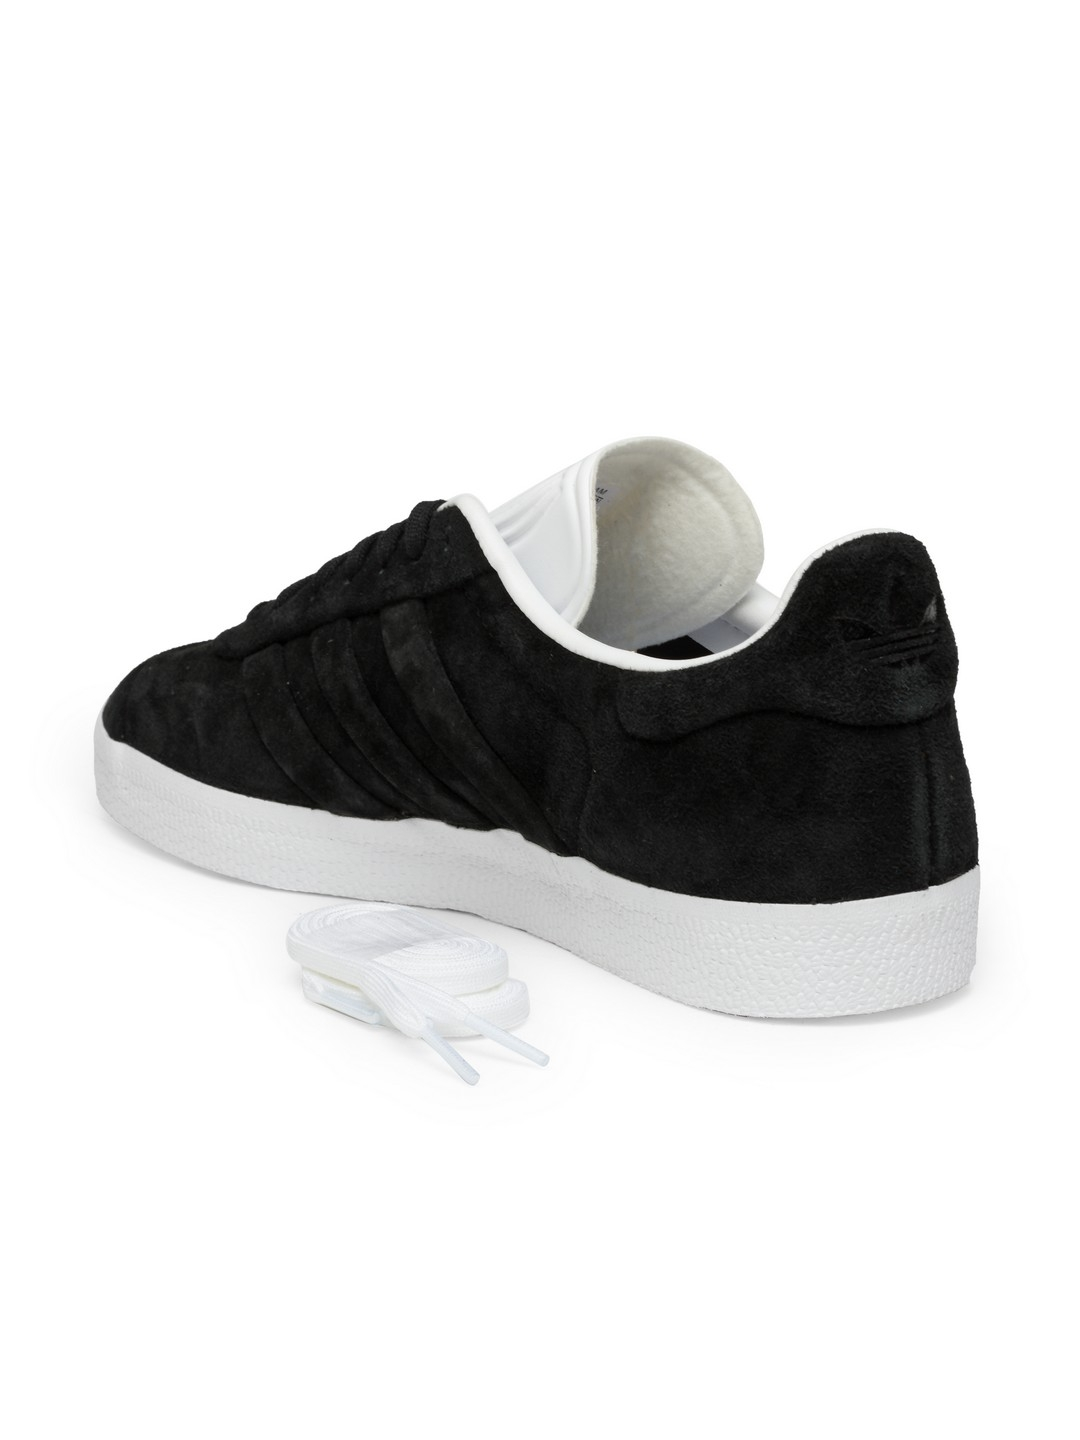 new product ad0e9 2b4fb ADIDAS Originals Men Black Gazelle Stitch   Turn Suede Sneakers